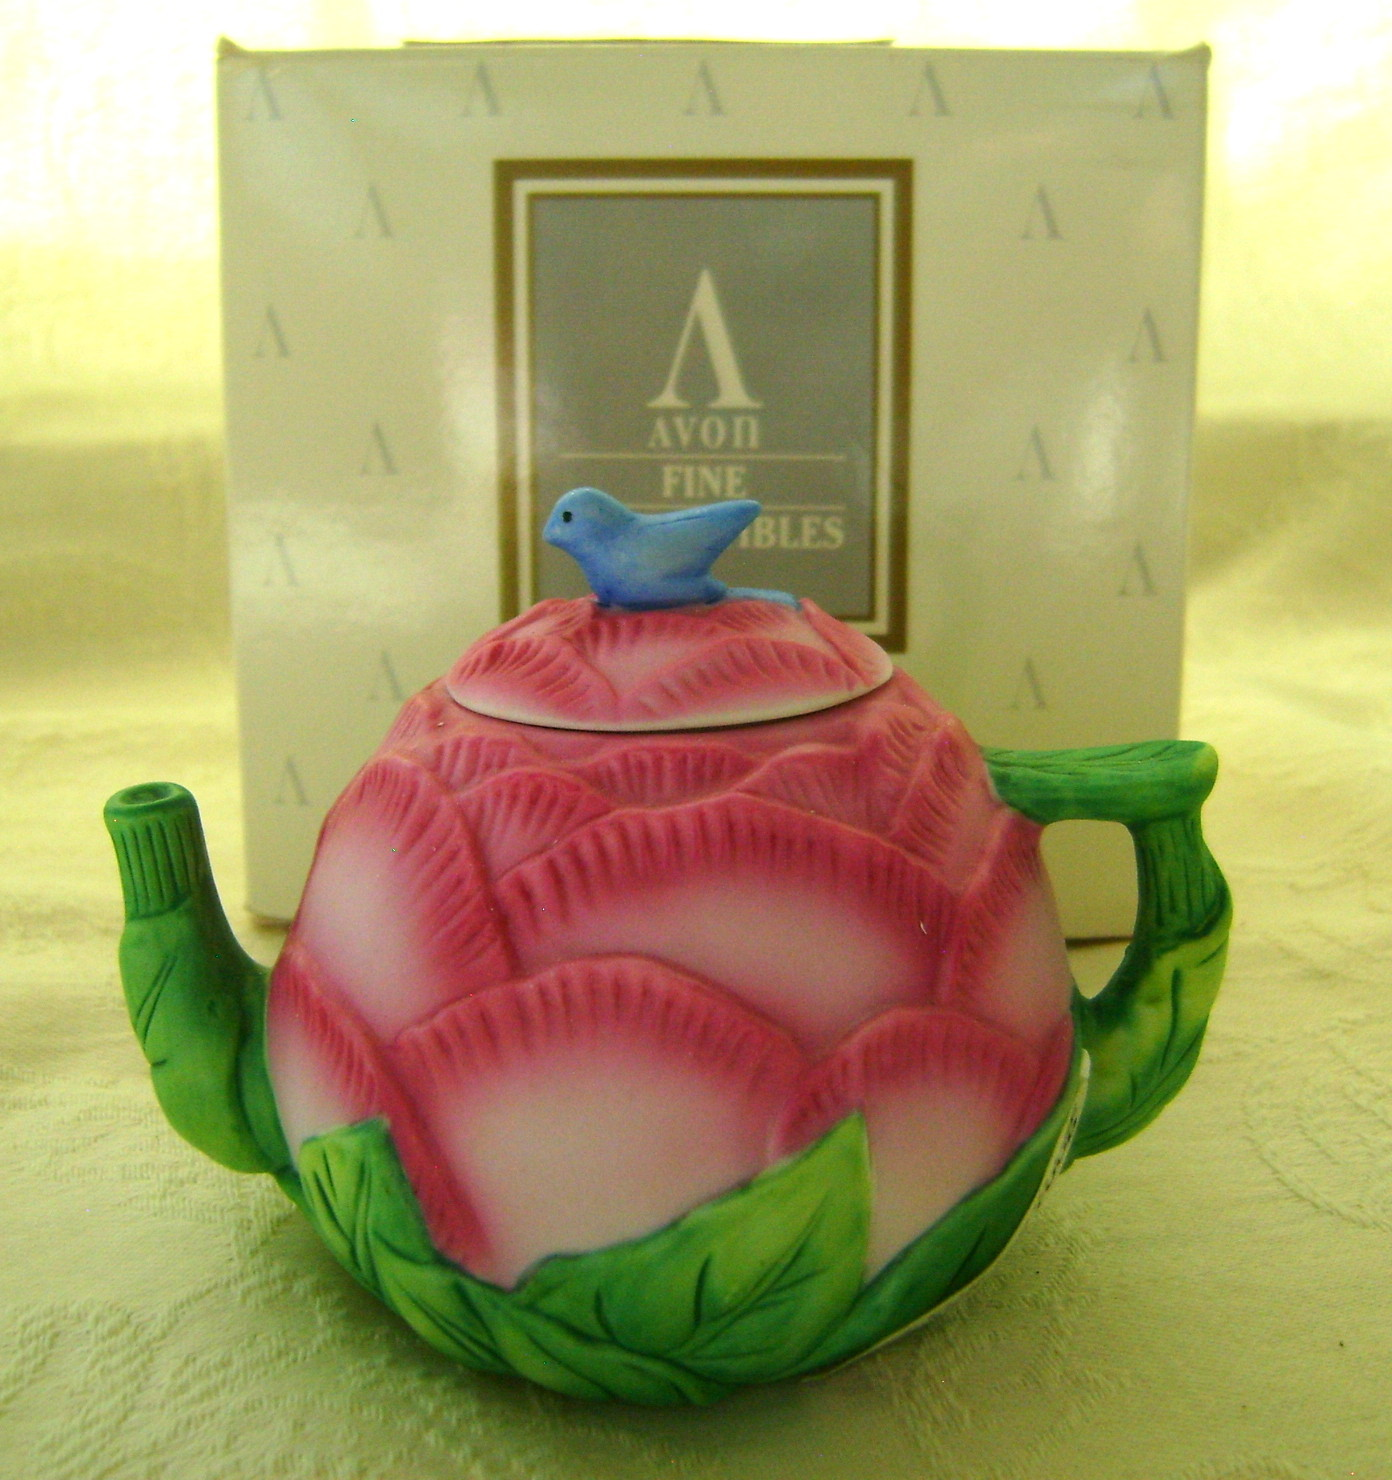 Seasons of The Year Mini Teapot - Avon 1995